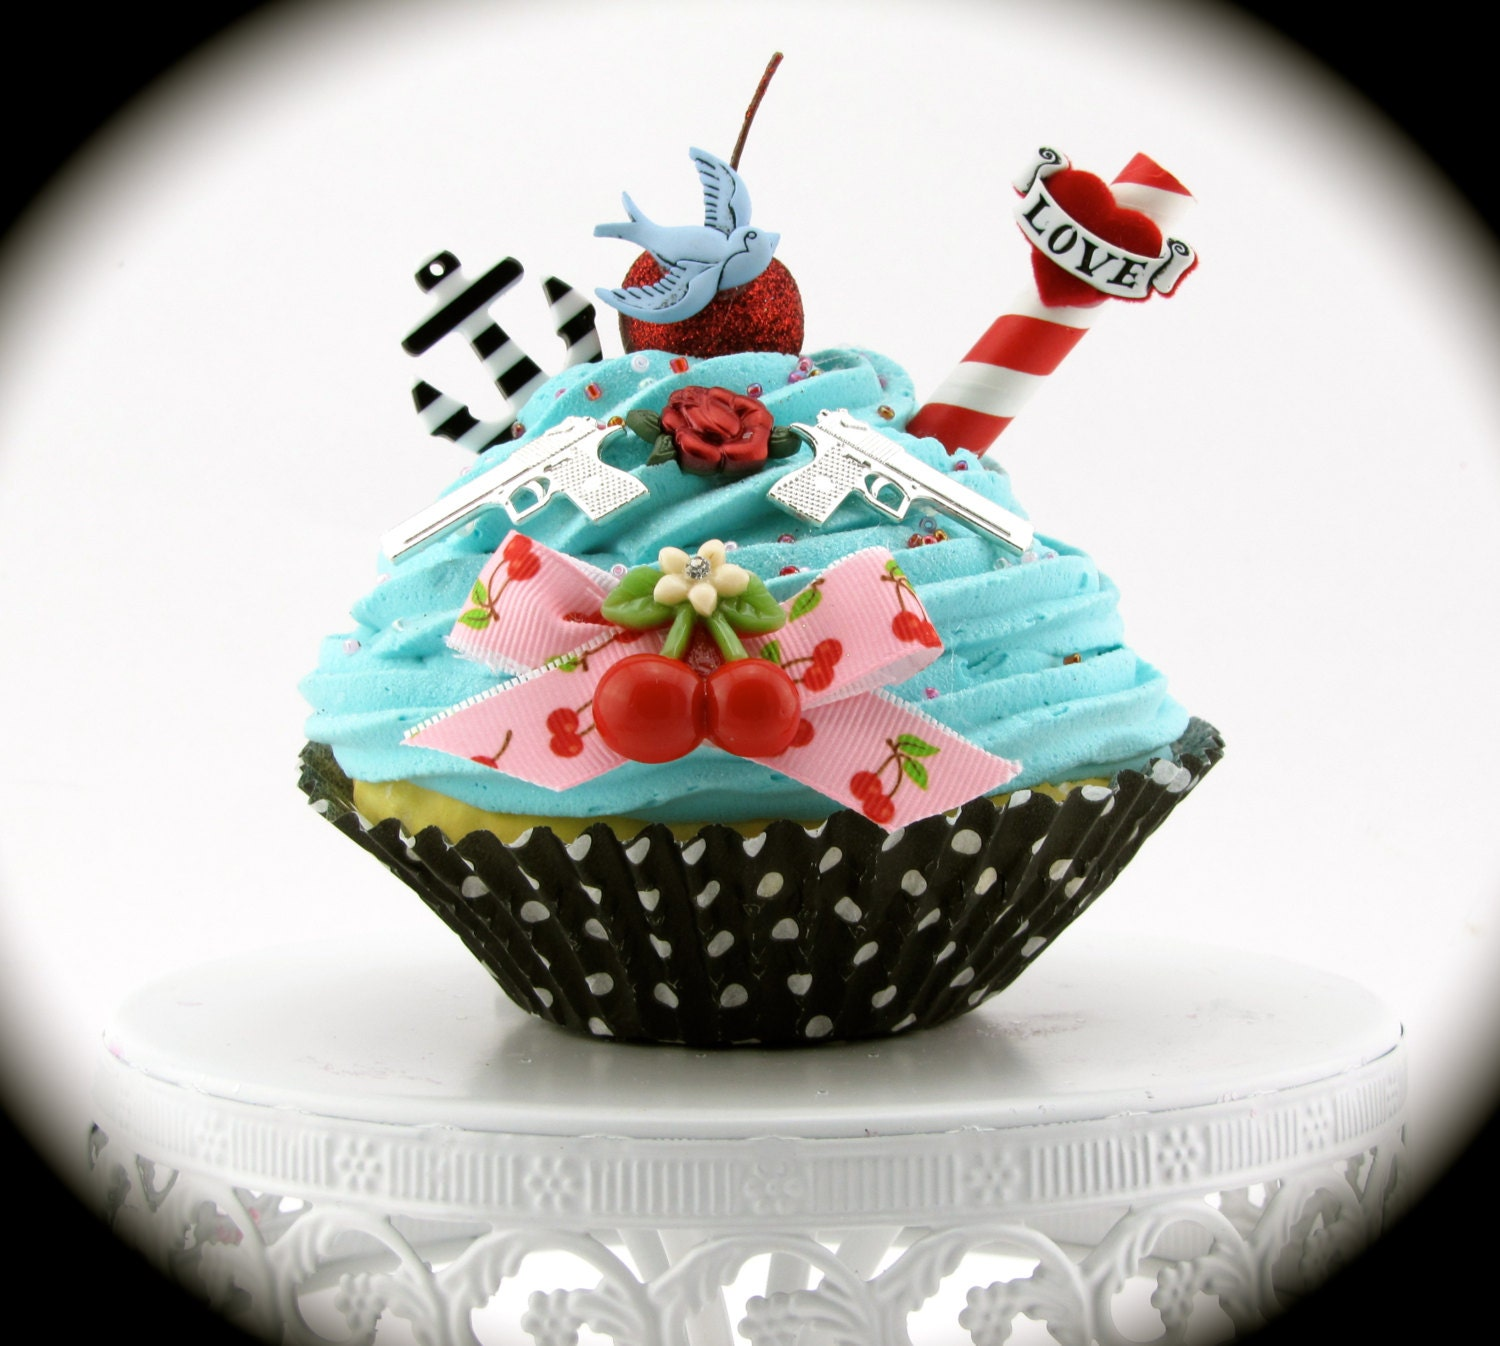 Fake Cupcake Tutorial Images - Any Tutorial Examples